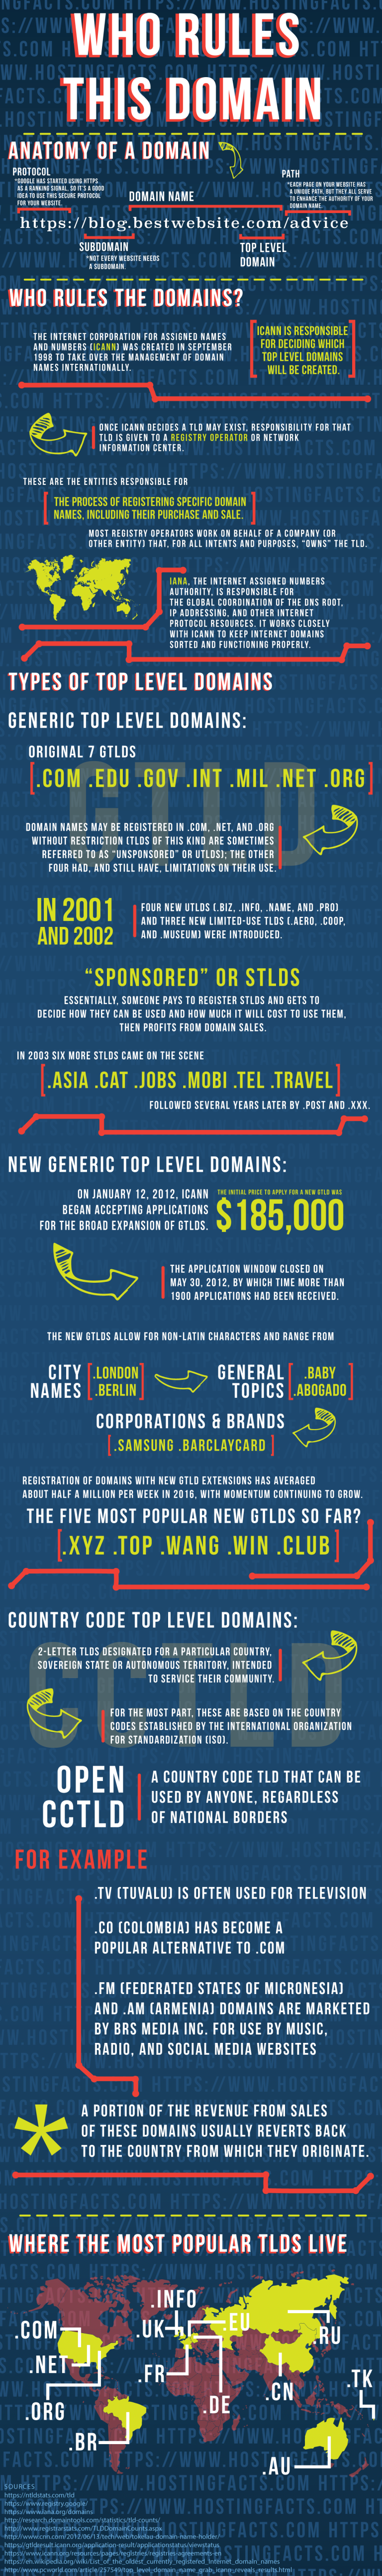 who_rules_domains_infographic-768x5175